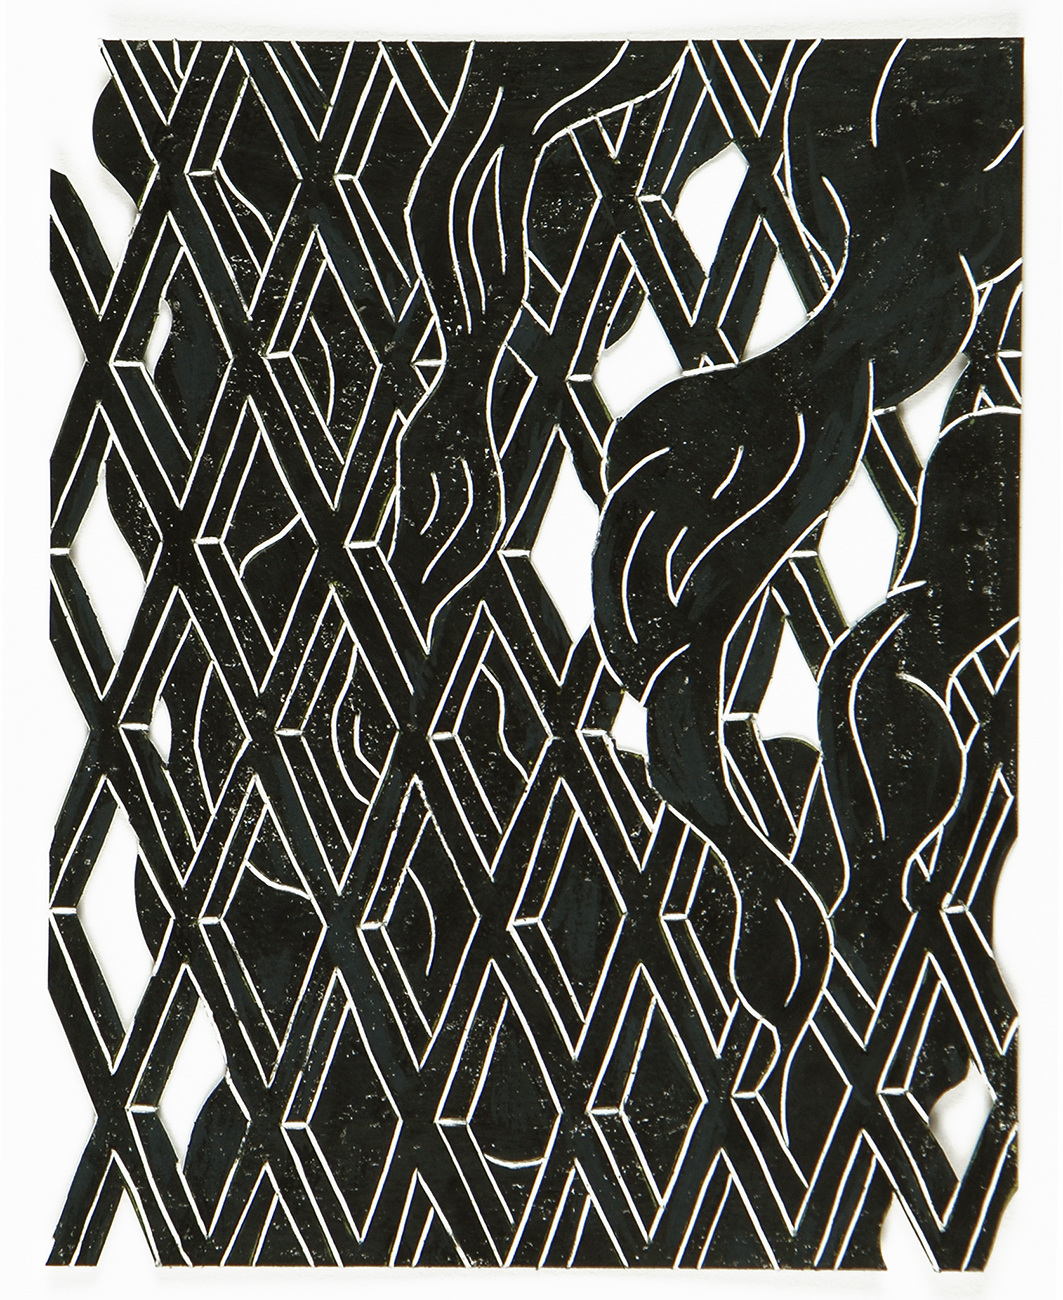 The Black Drawings Smoke & Lattice